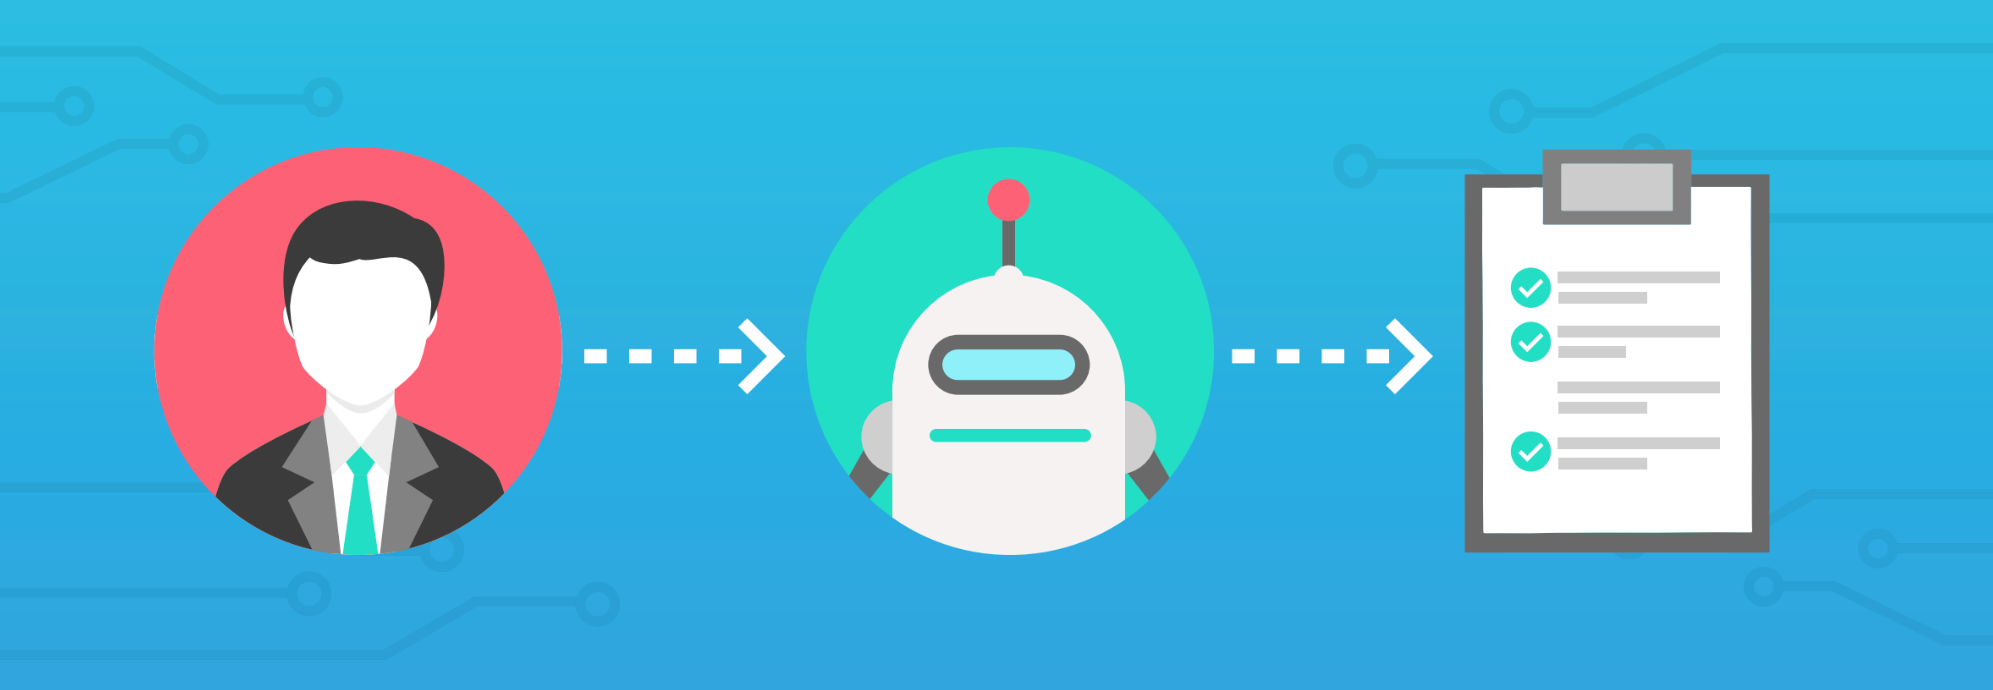 b2b saas applications robot automation